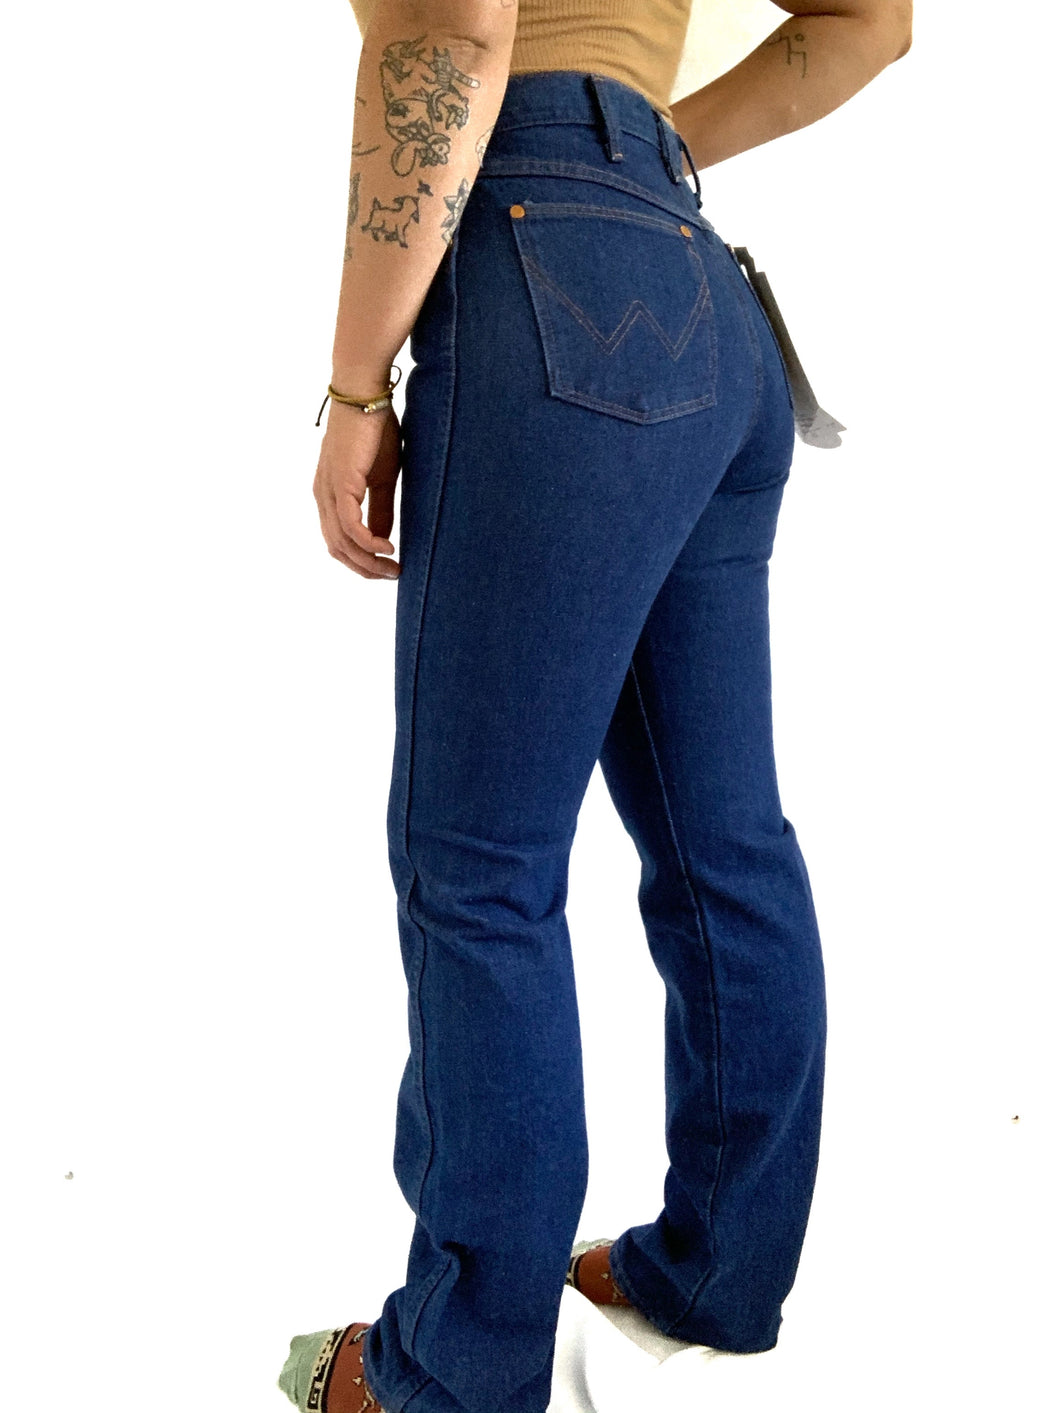 Vintage Cowboy Cut Wranglers with Tags